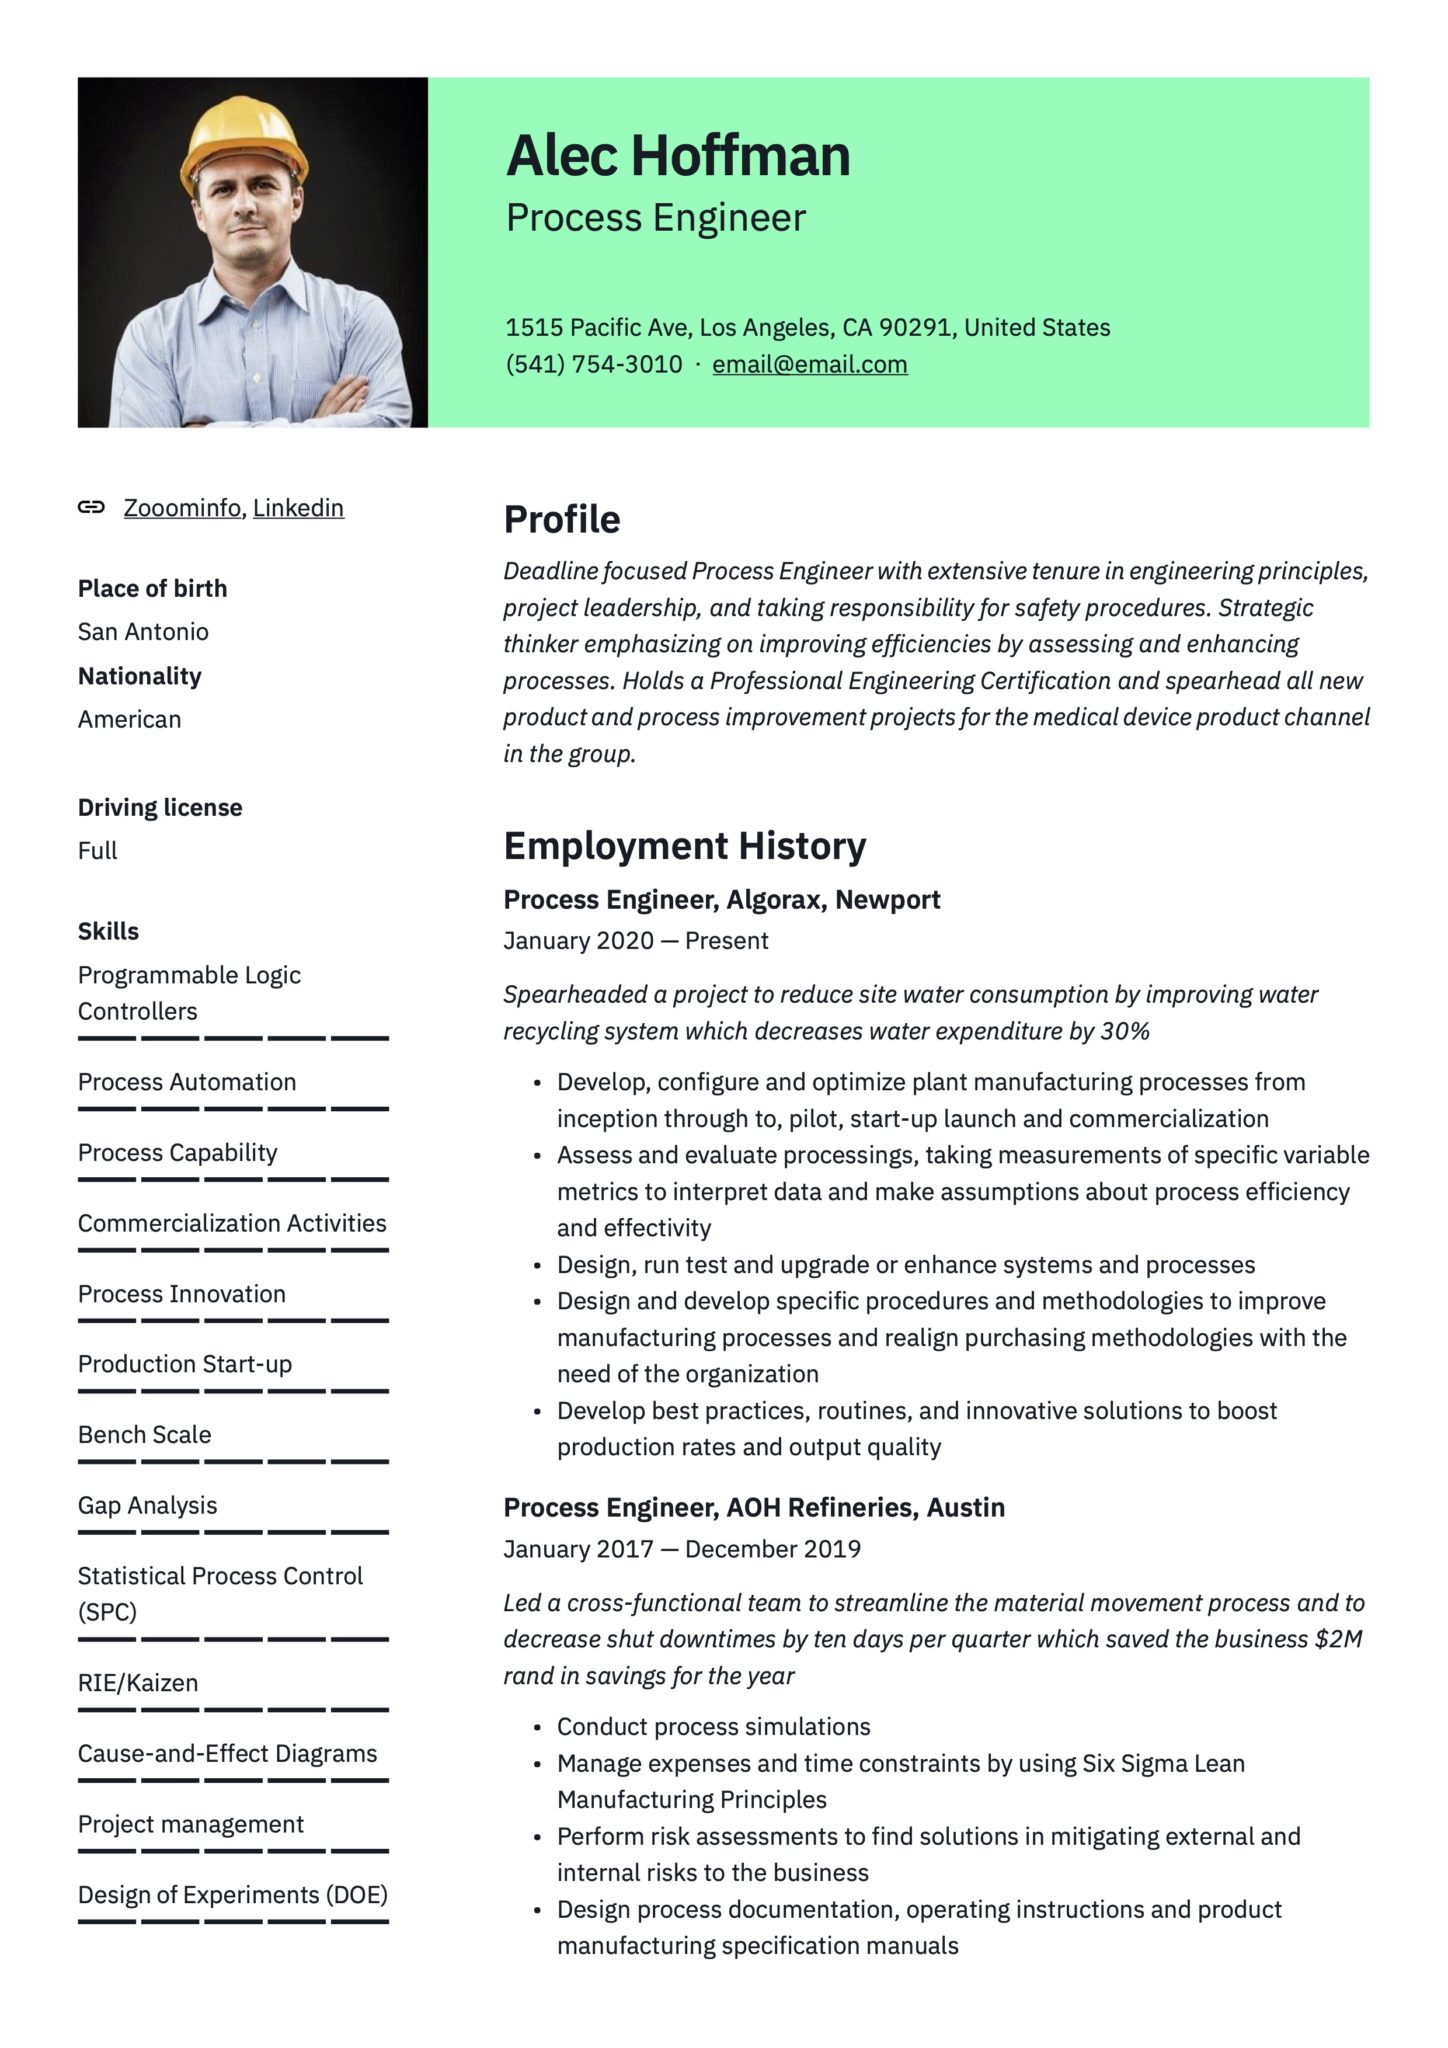 17 process engineer resume examples  guide  2021